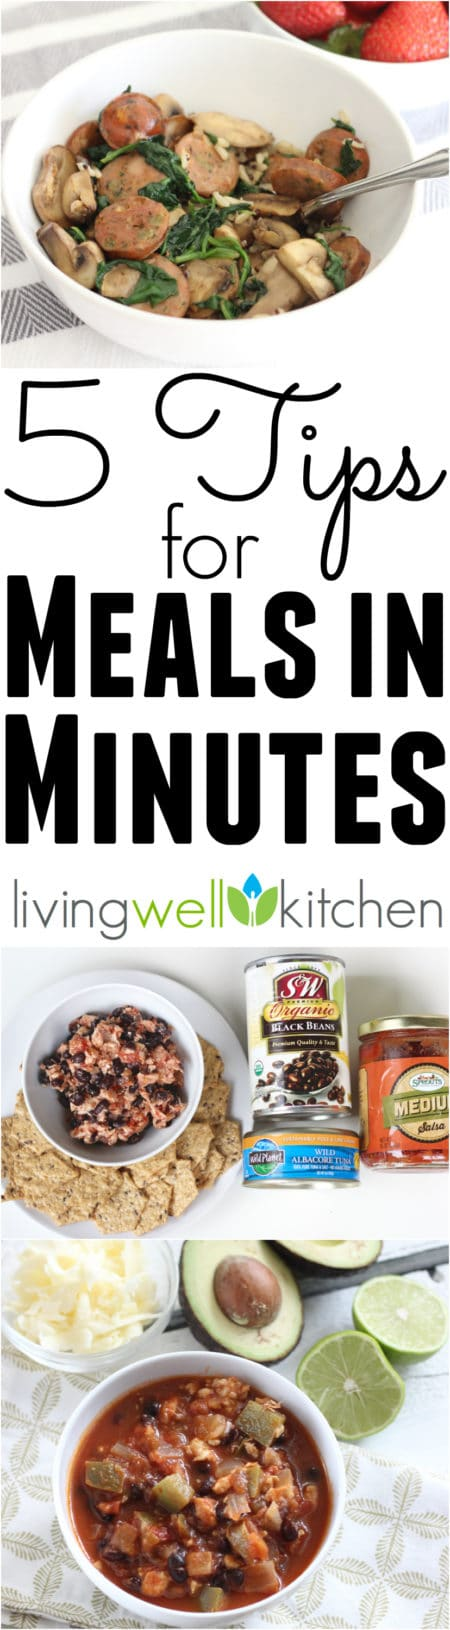 5 Tips for Meals in Minutes from @memeinge, so you don't have to spend hours in the kitchen to make a nourishing meal. Plus, get the free eBook with tips, recipes, and shopping lists!